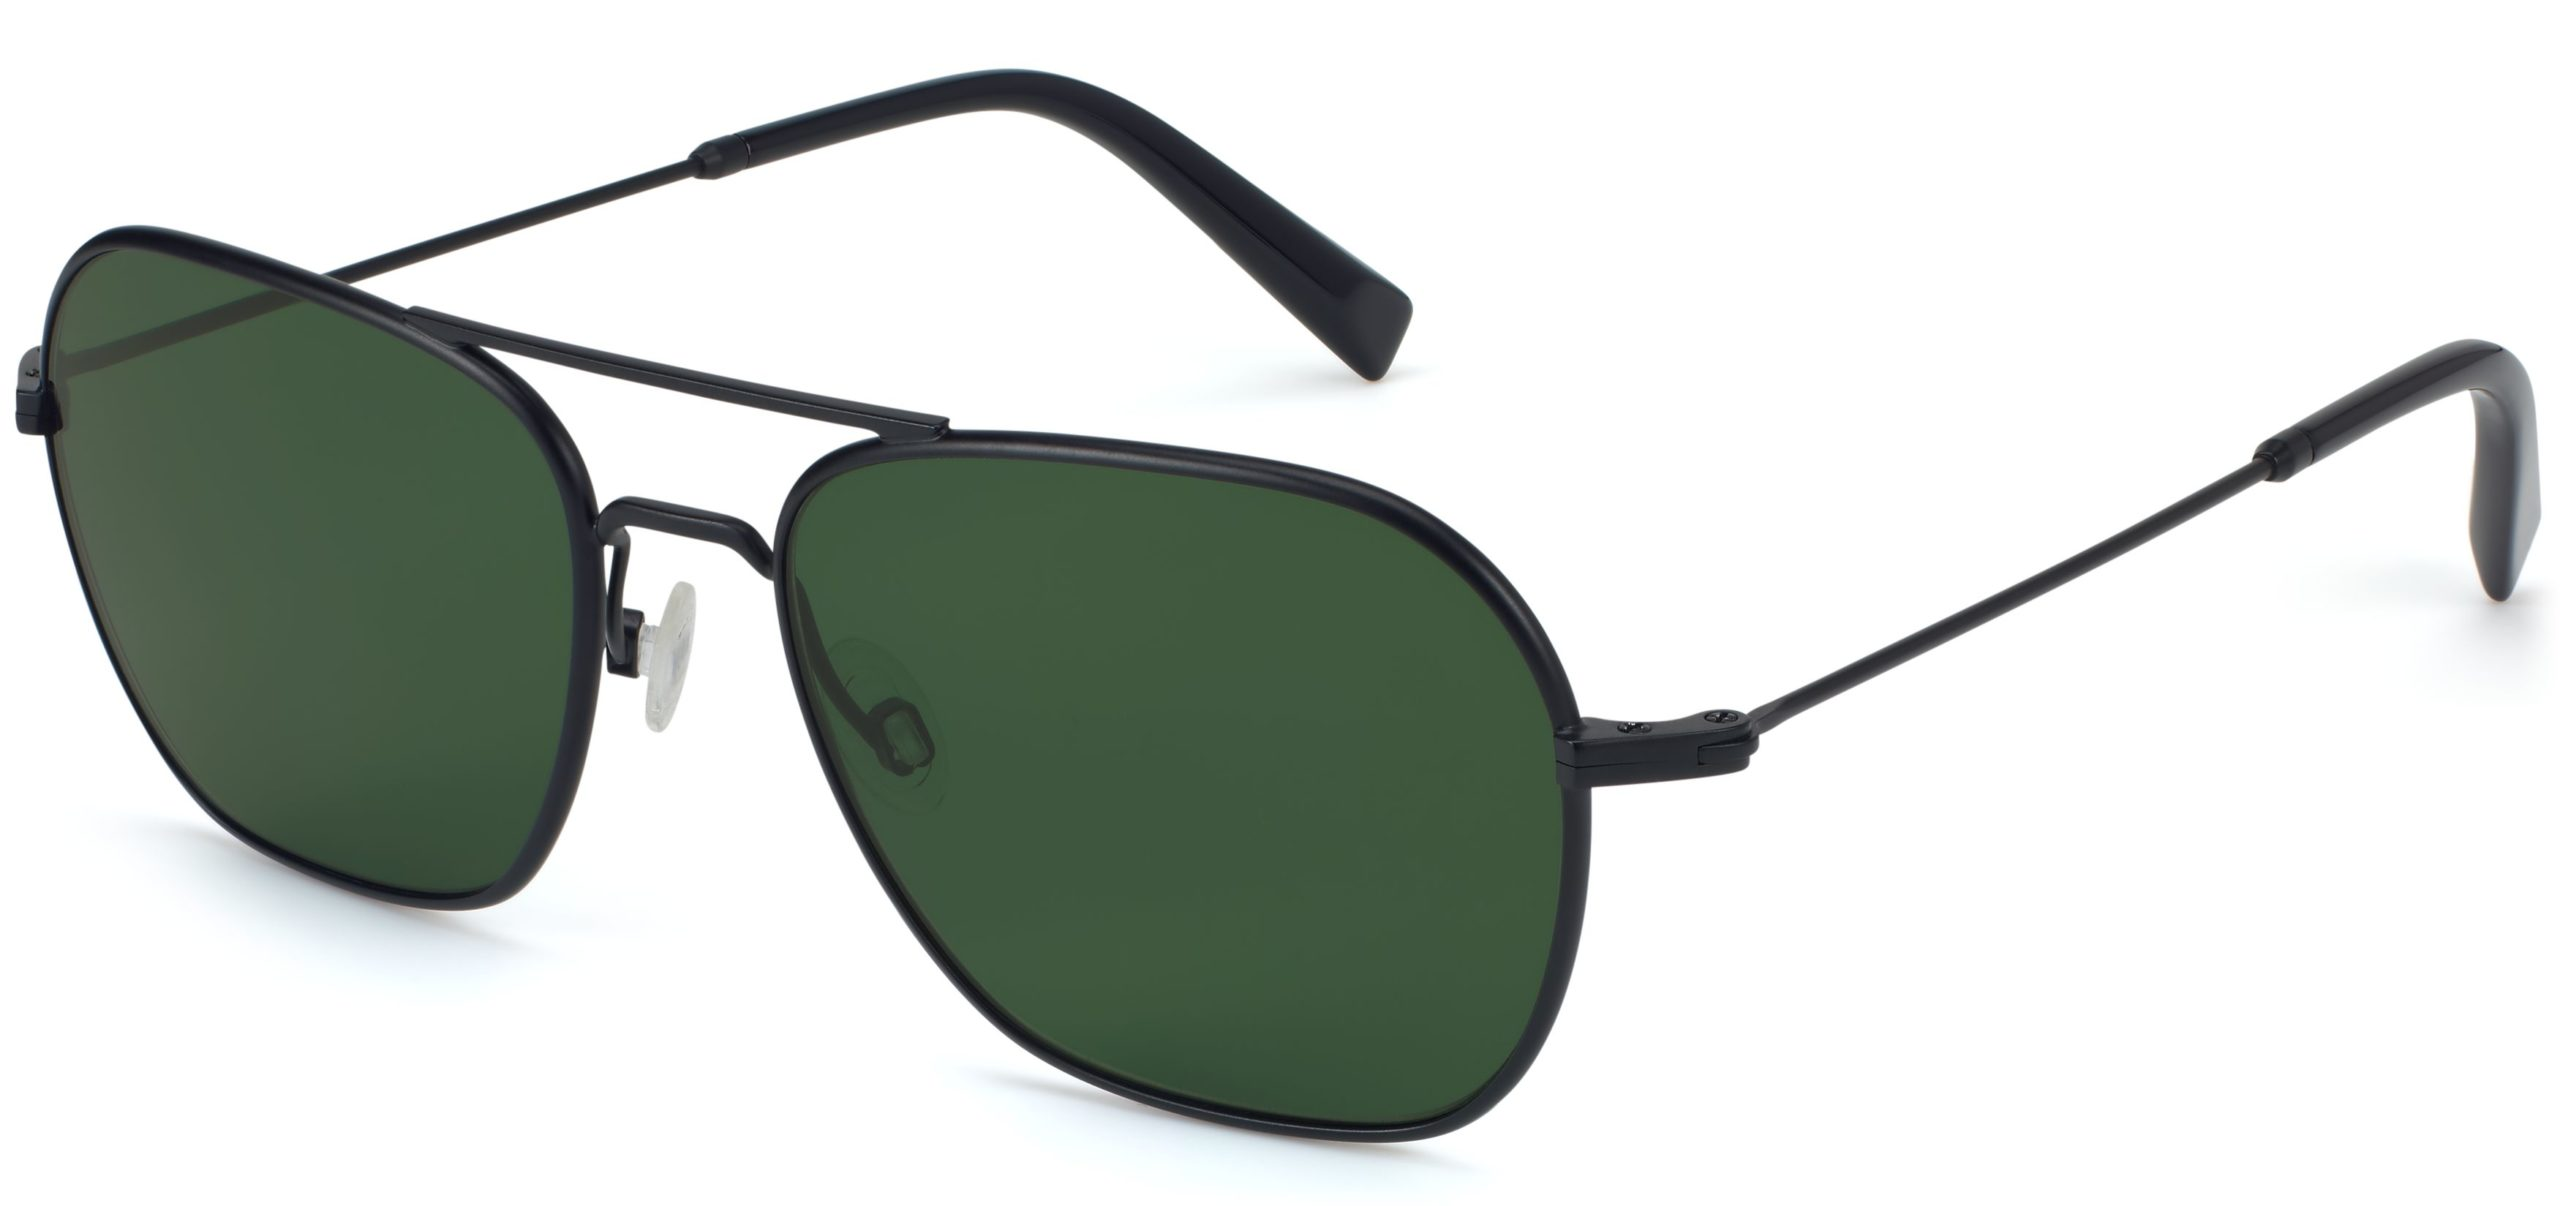 Abe Sunglasses Review - Warby Parker - Brushed Ink - 55-16-145 - Women